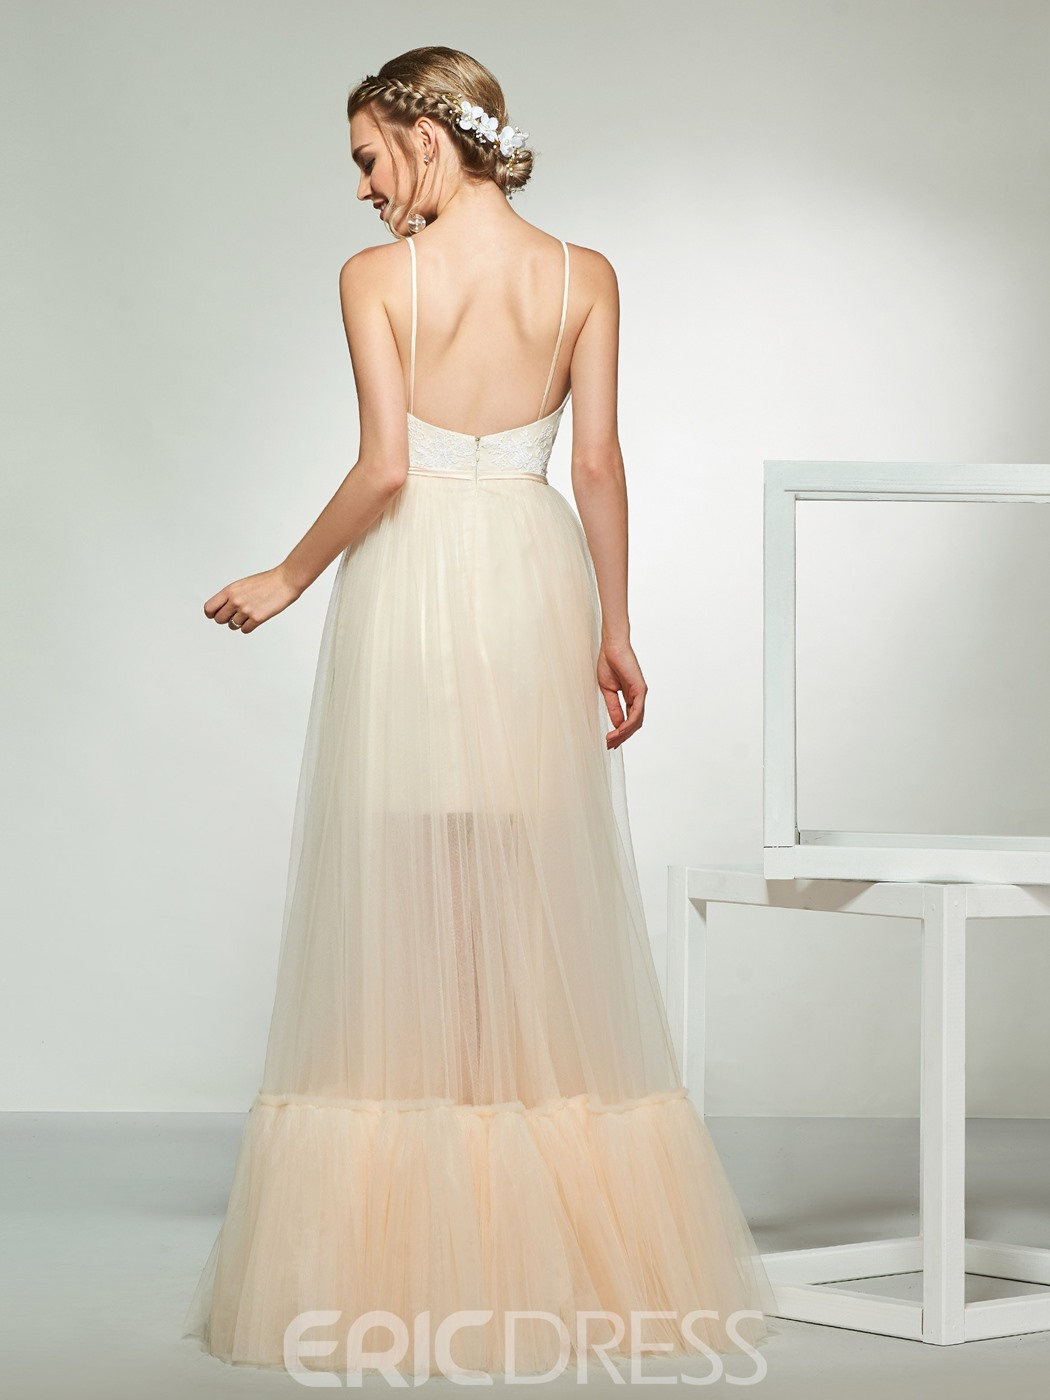 Ericdress Spaghetti Straps Lace Outdoor Wedding Dress